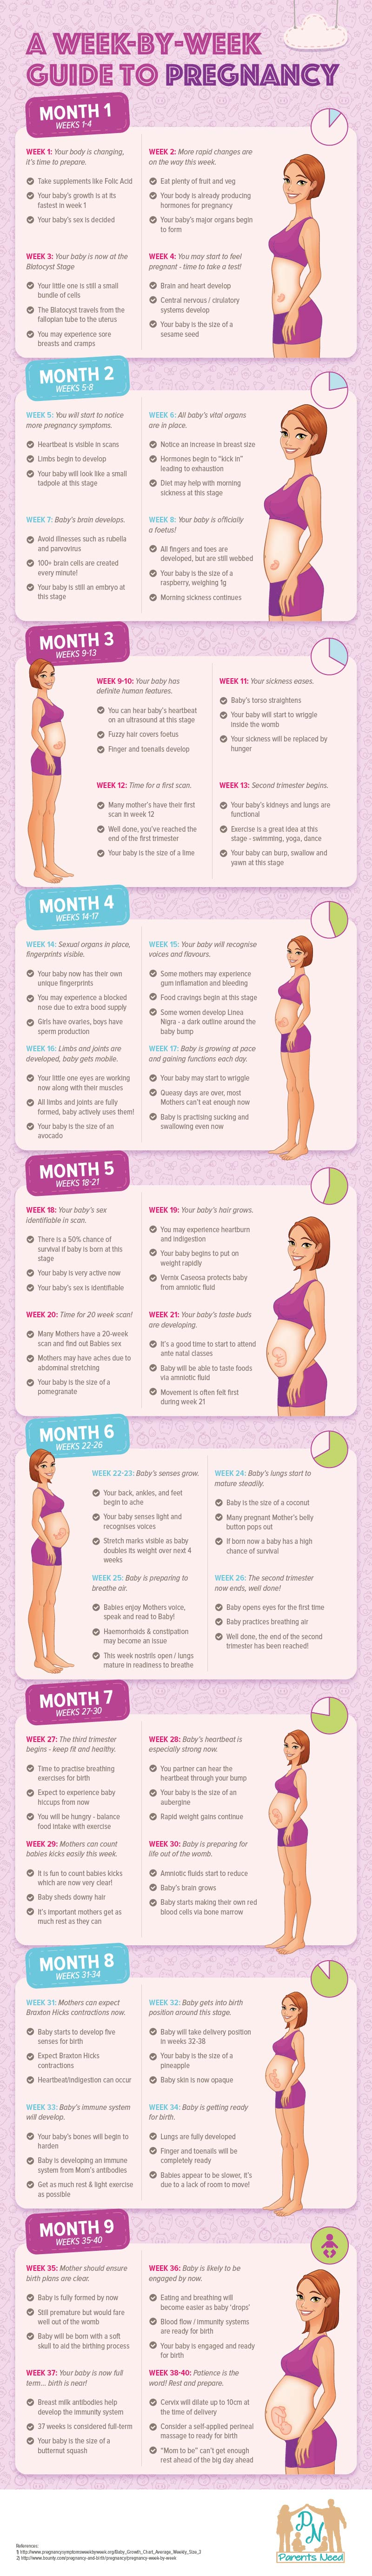 Week by Week Guide to Pregnancy